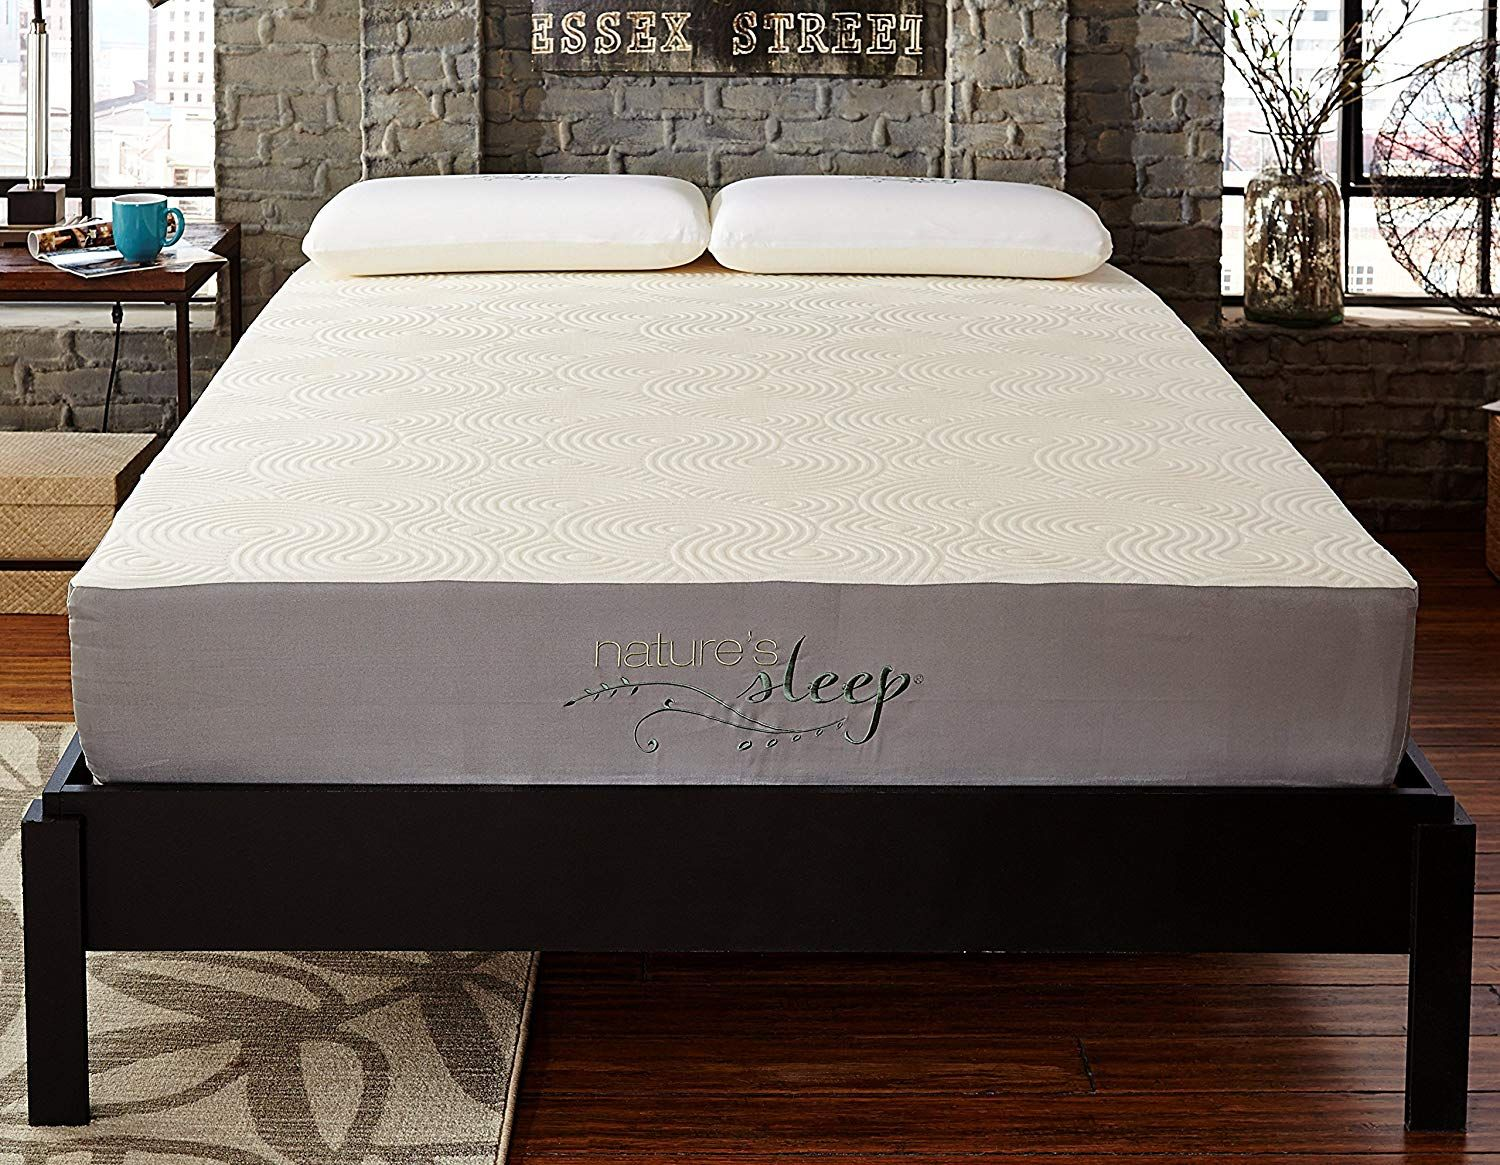 Nature S Sleep 10 Gel Memory Foam Mattress In 2020 Gel Memory Foam Mattress Memory Foam Mattress Foam Mattress